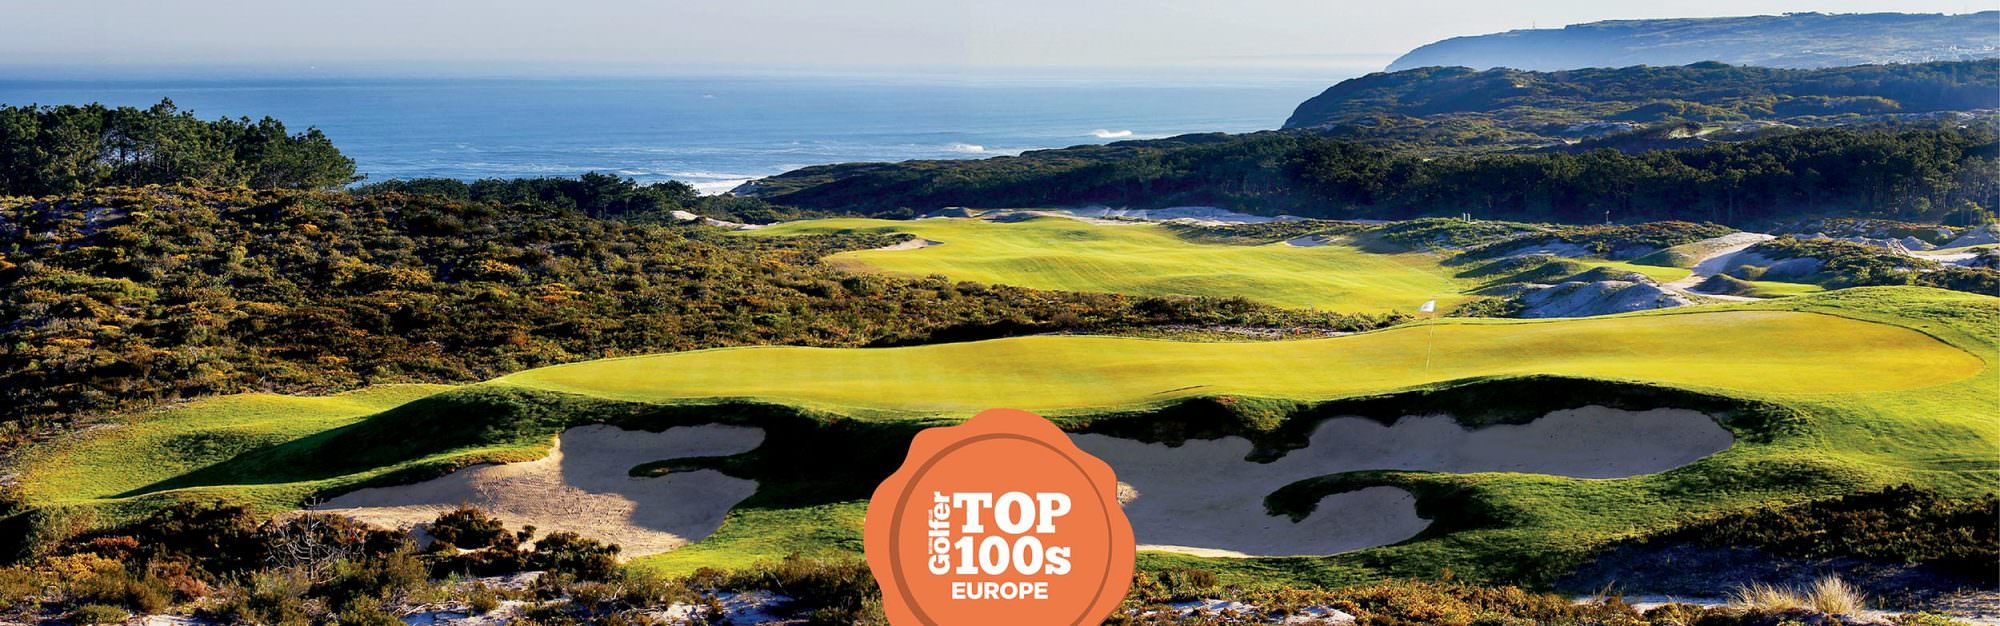 NCG's Top 100 Golf Courses in Continental Europe